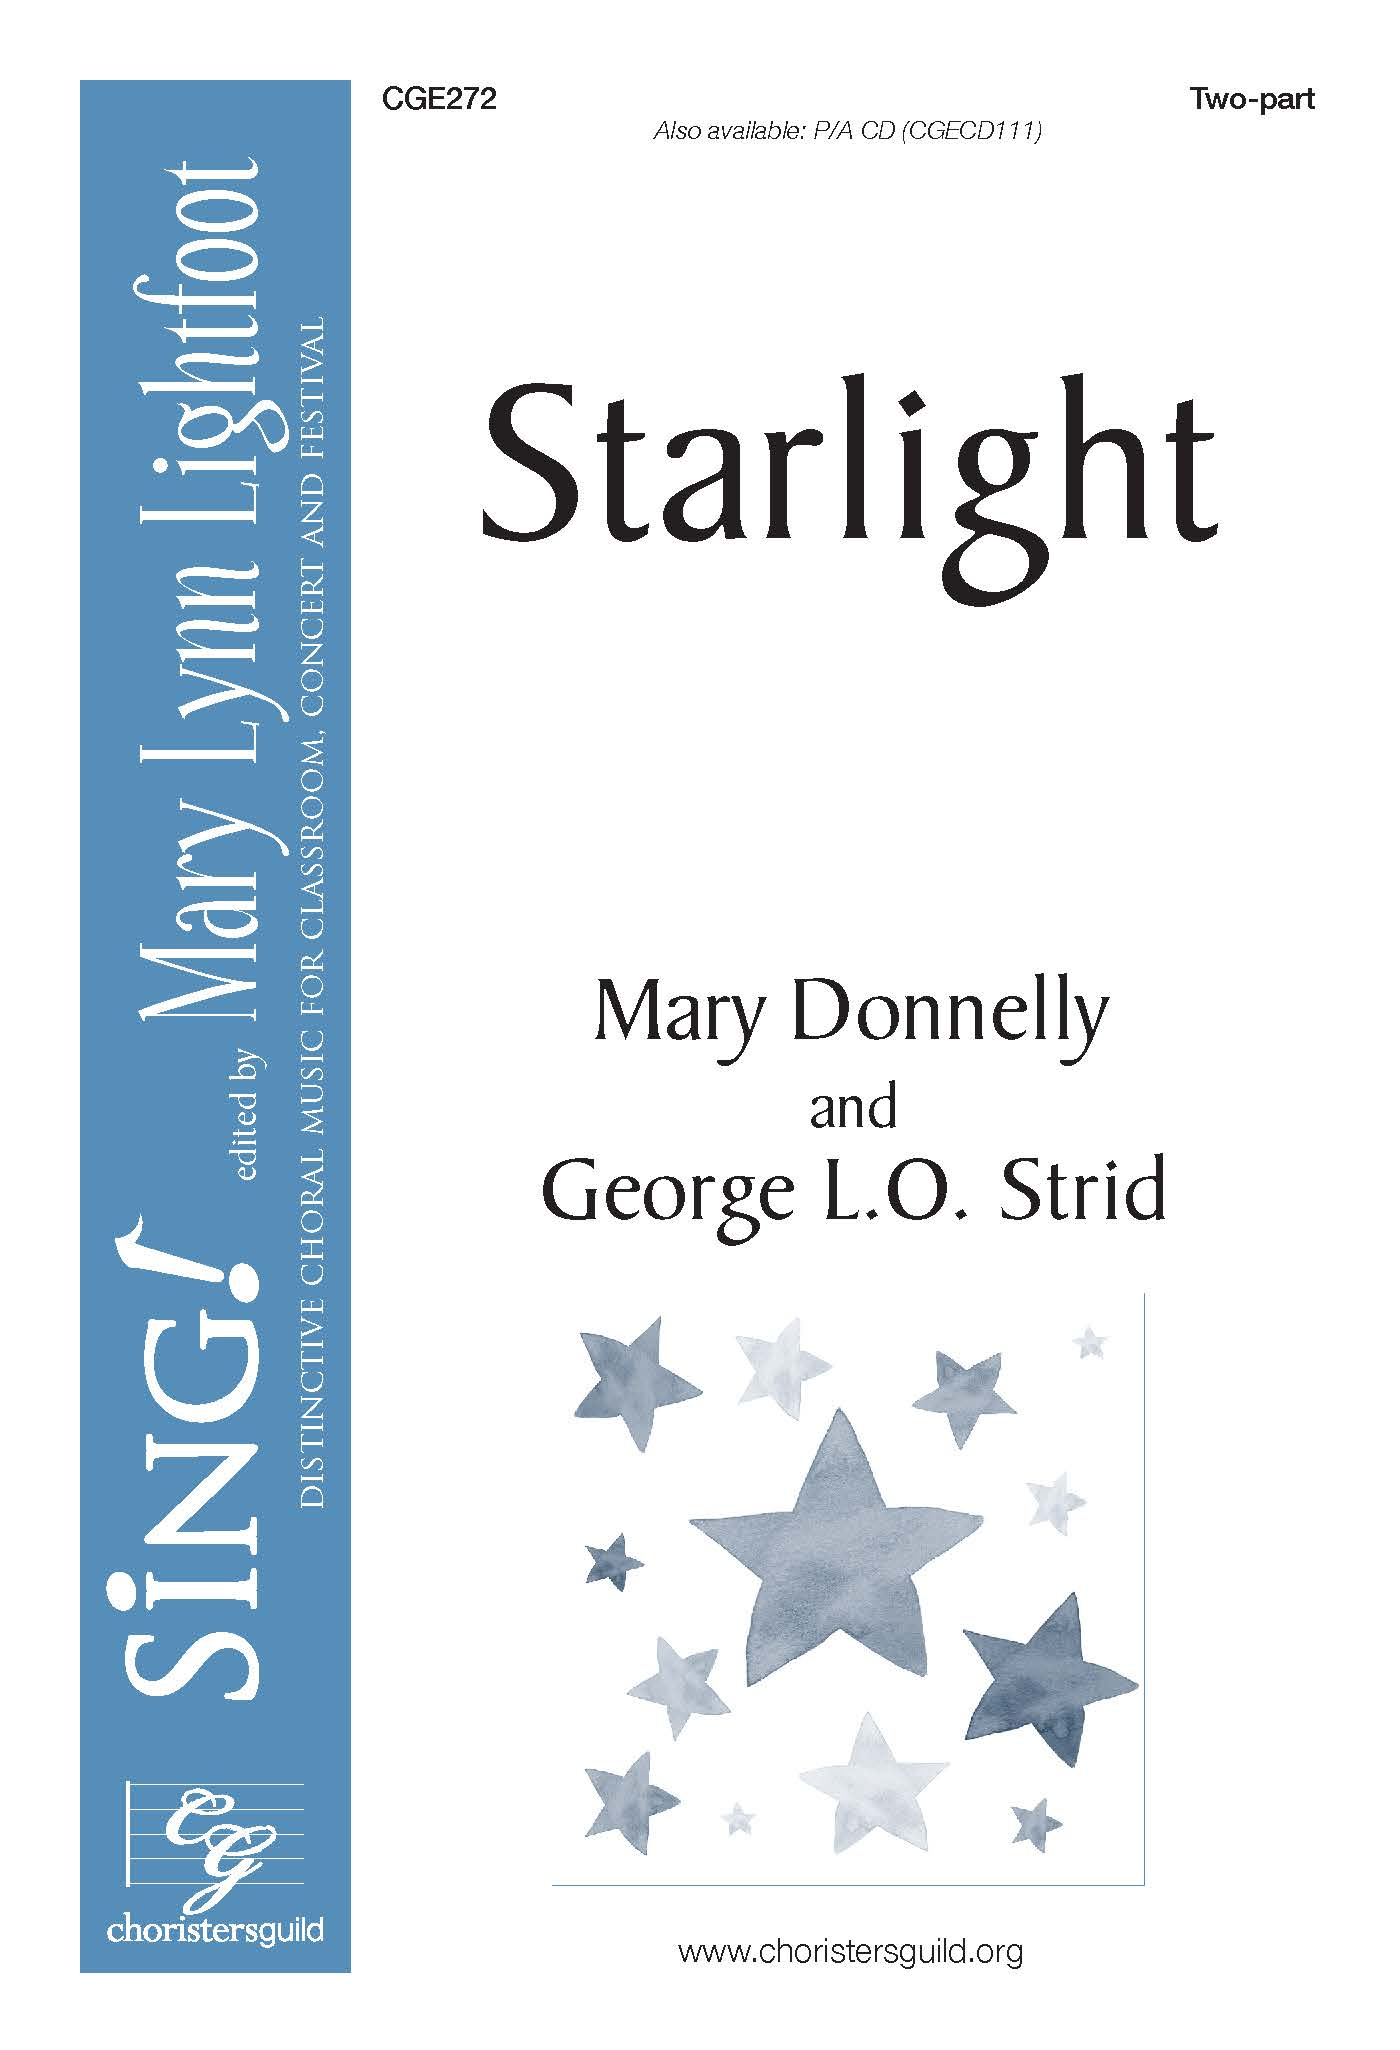 Starlight Two-part